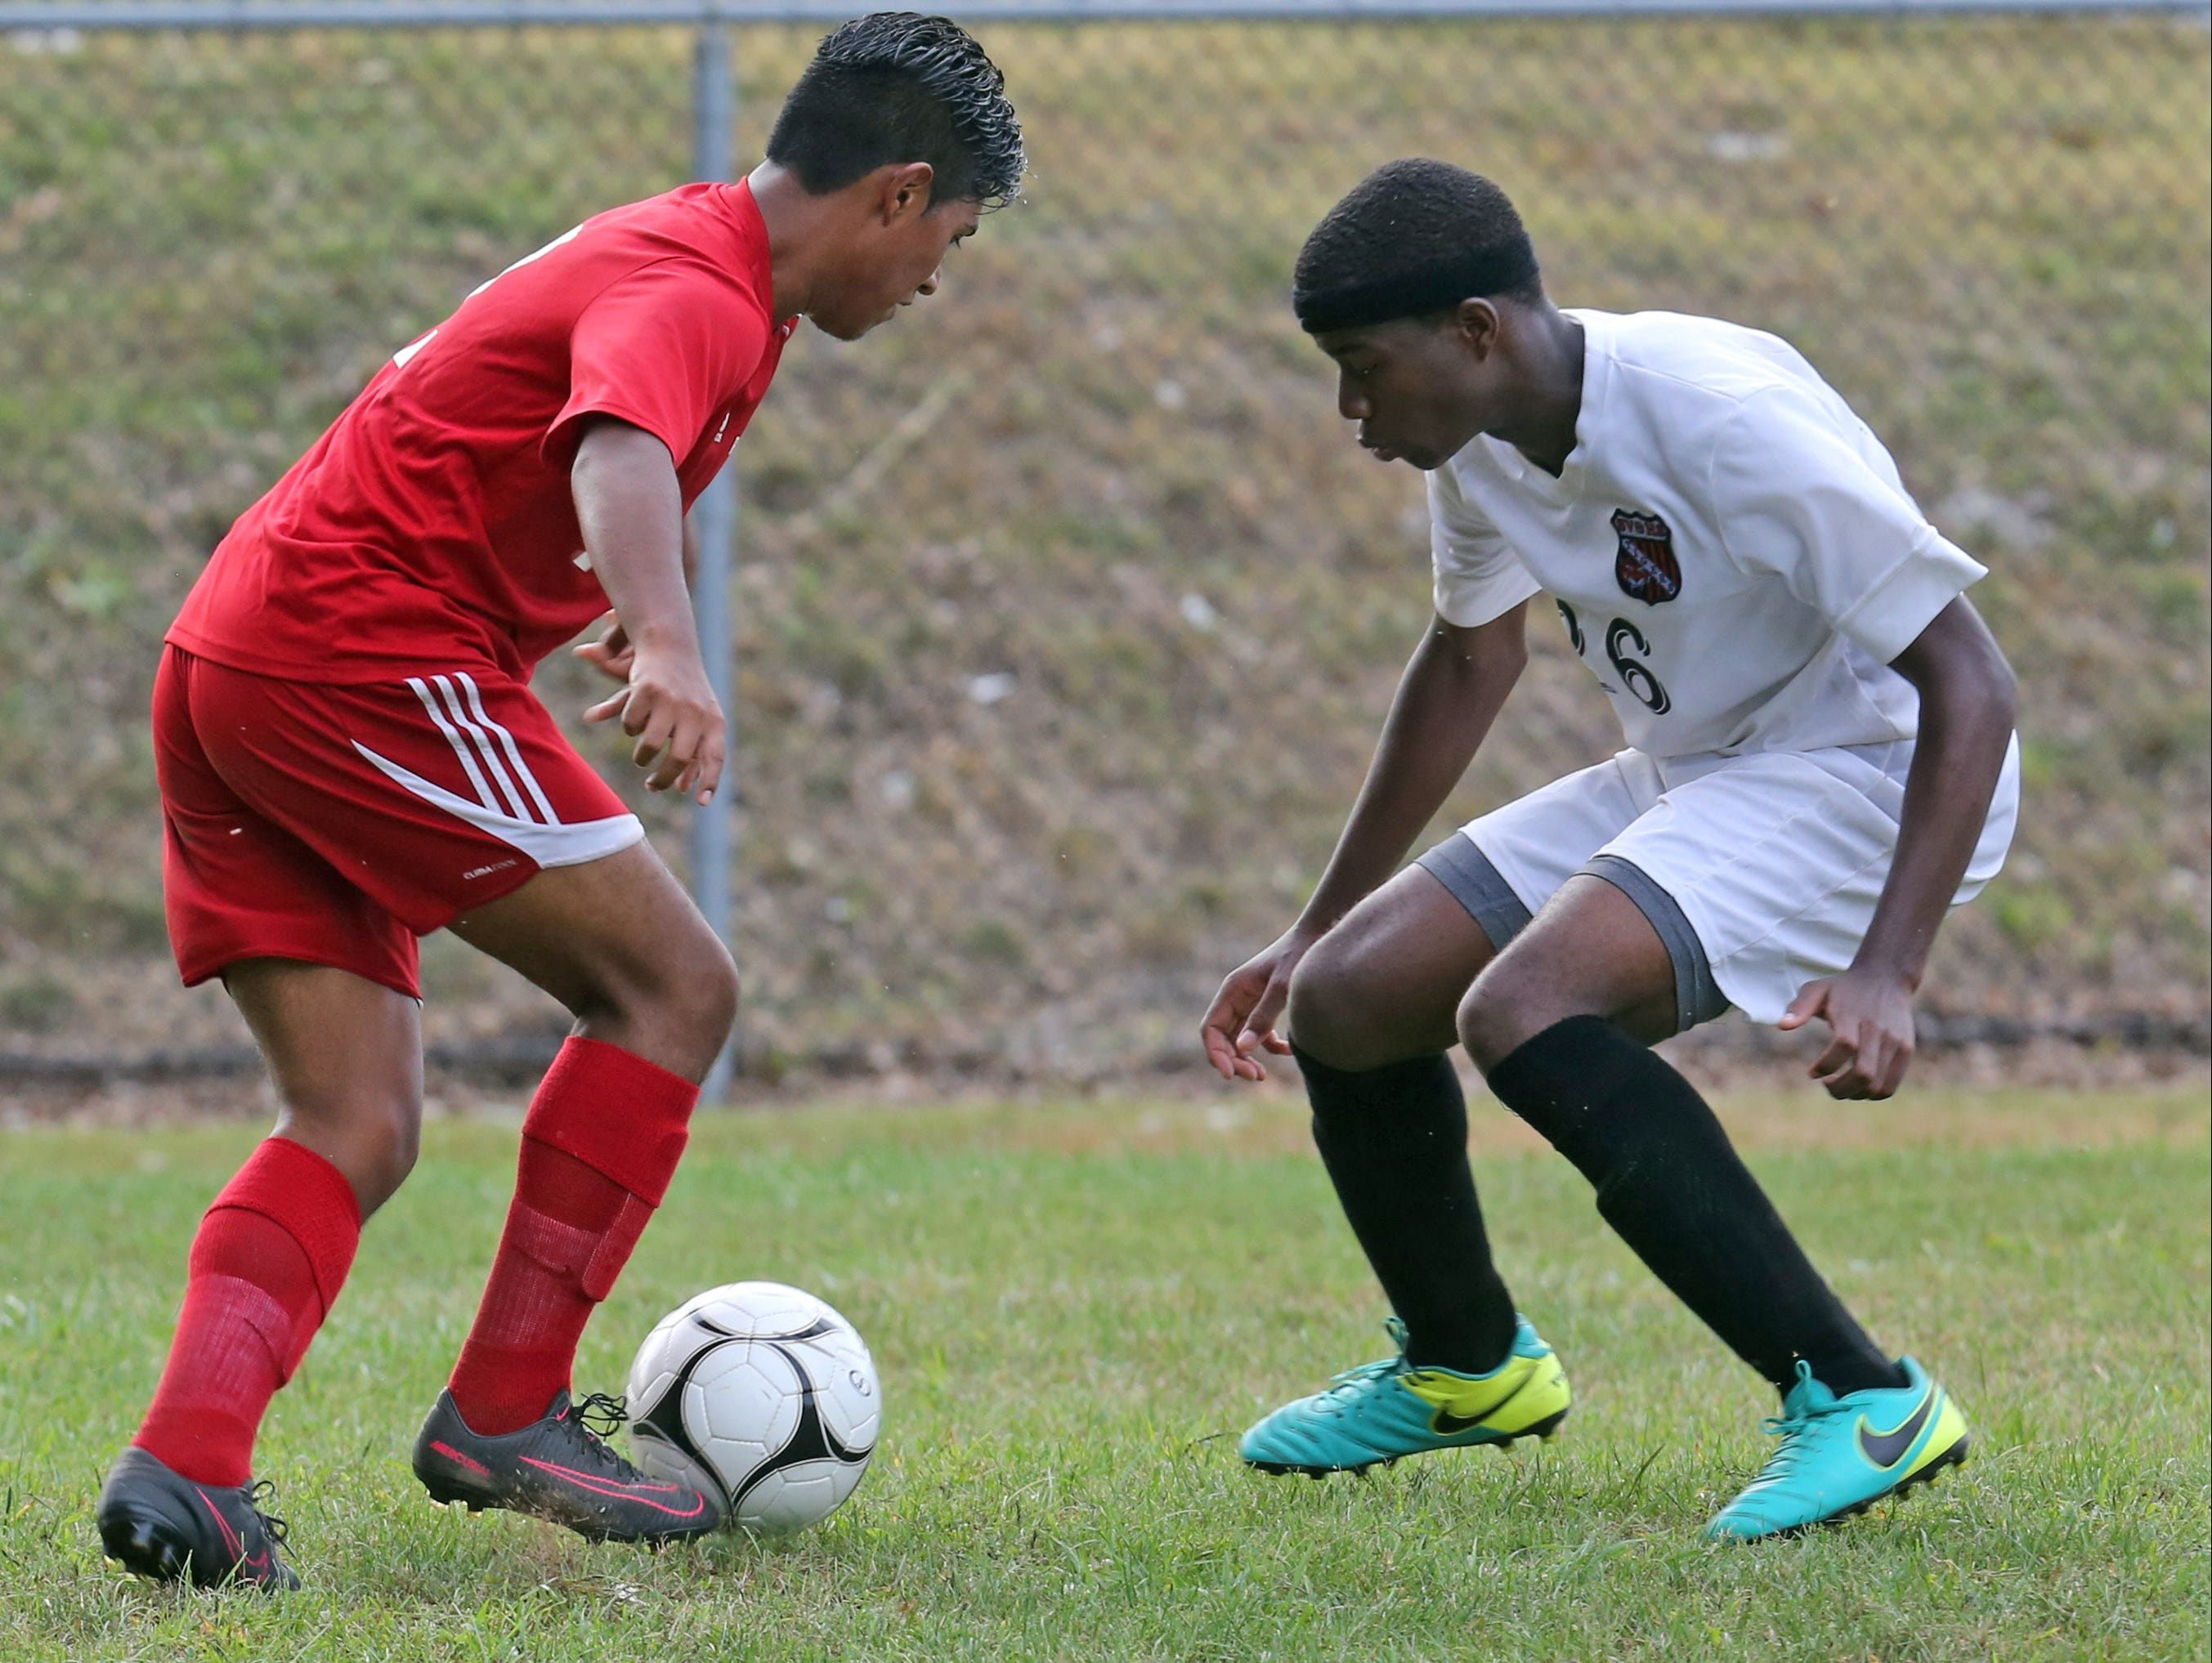 North Rockland plays Spring Valley at Spring Valley High School on Sept. 20, 2016.